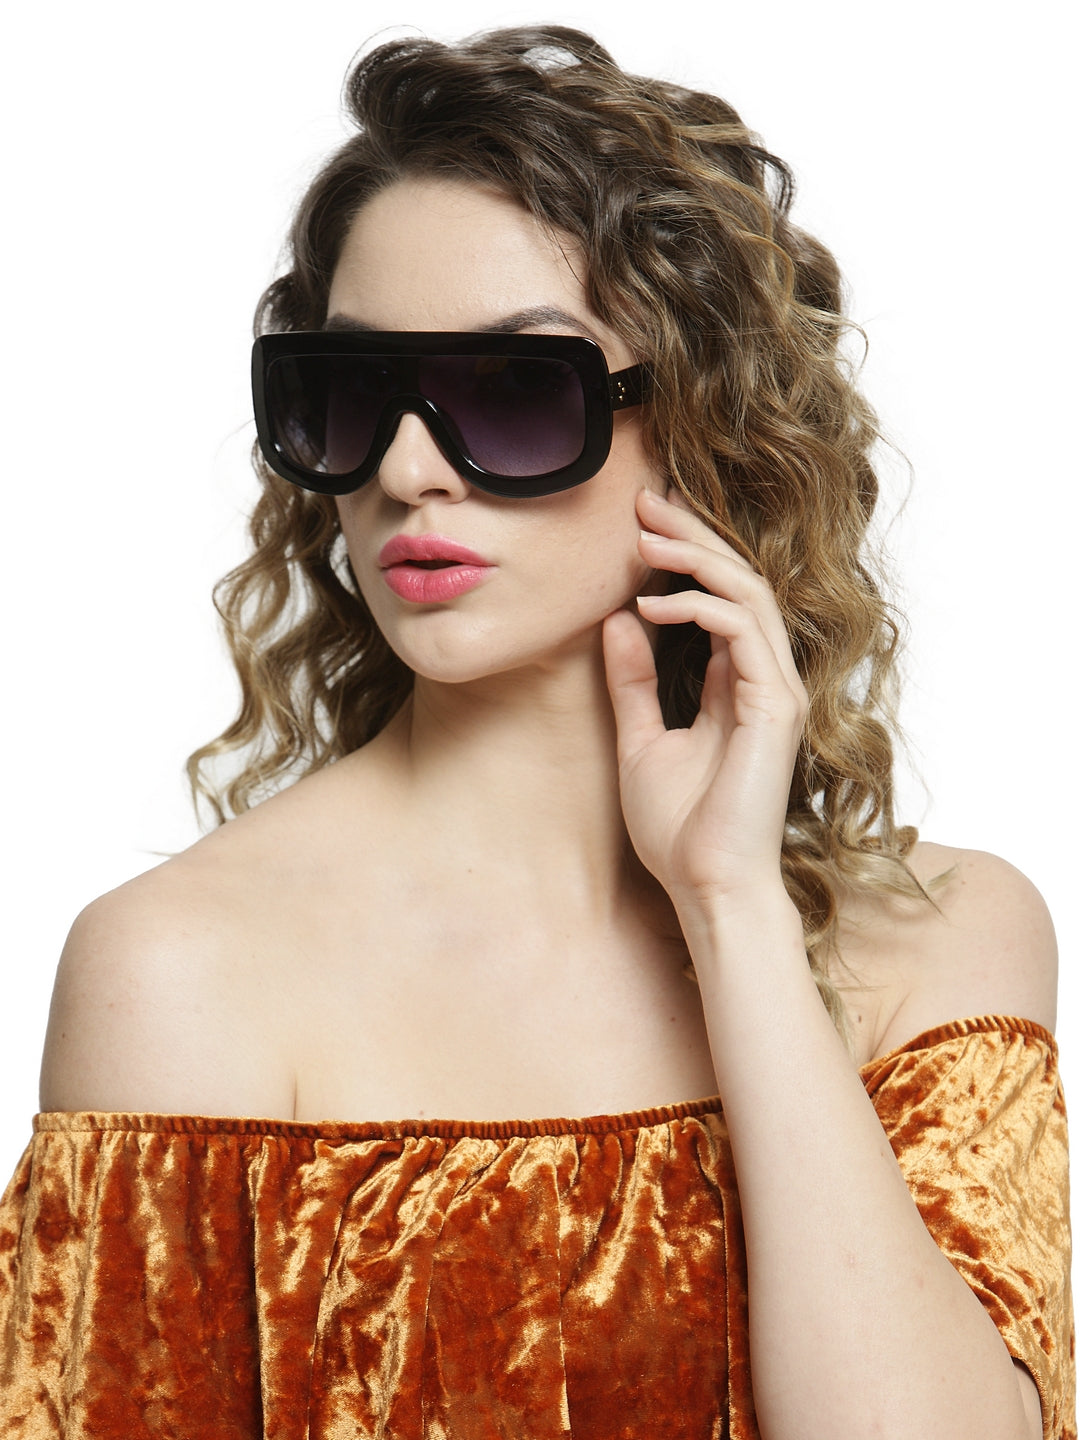 Avant-Garde Paris Luxury Vintage Big Frame Women Sunglasses